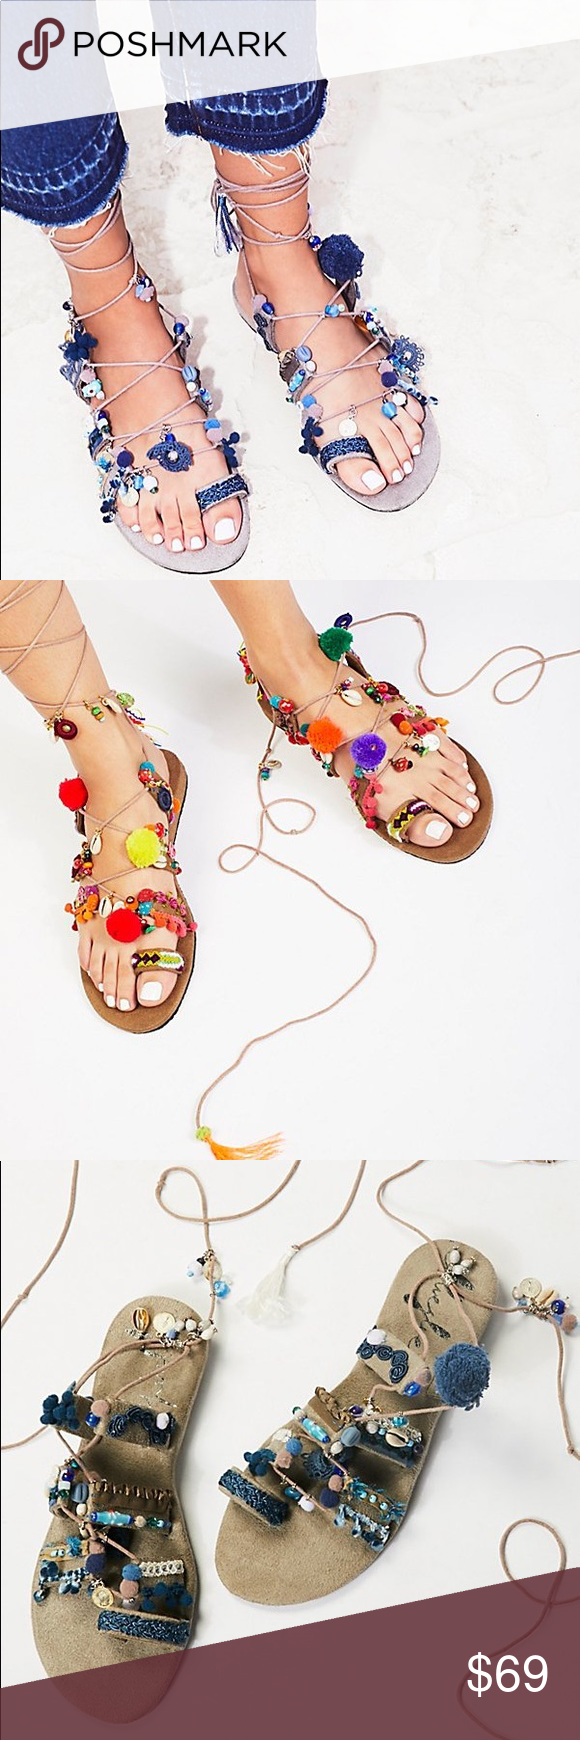 19d2df102c85b4 Free People Fools Gold Wrap Sandals Boho-inspired wrap sandals featuring an  ornate design with colorful embroidery and pom accents with beachy charms  ...